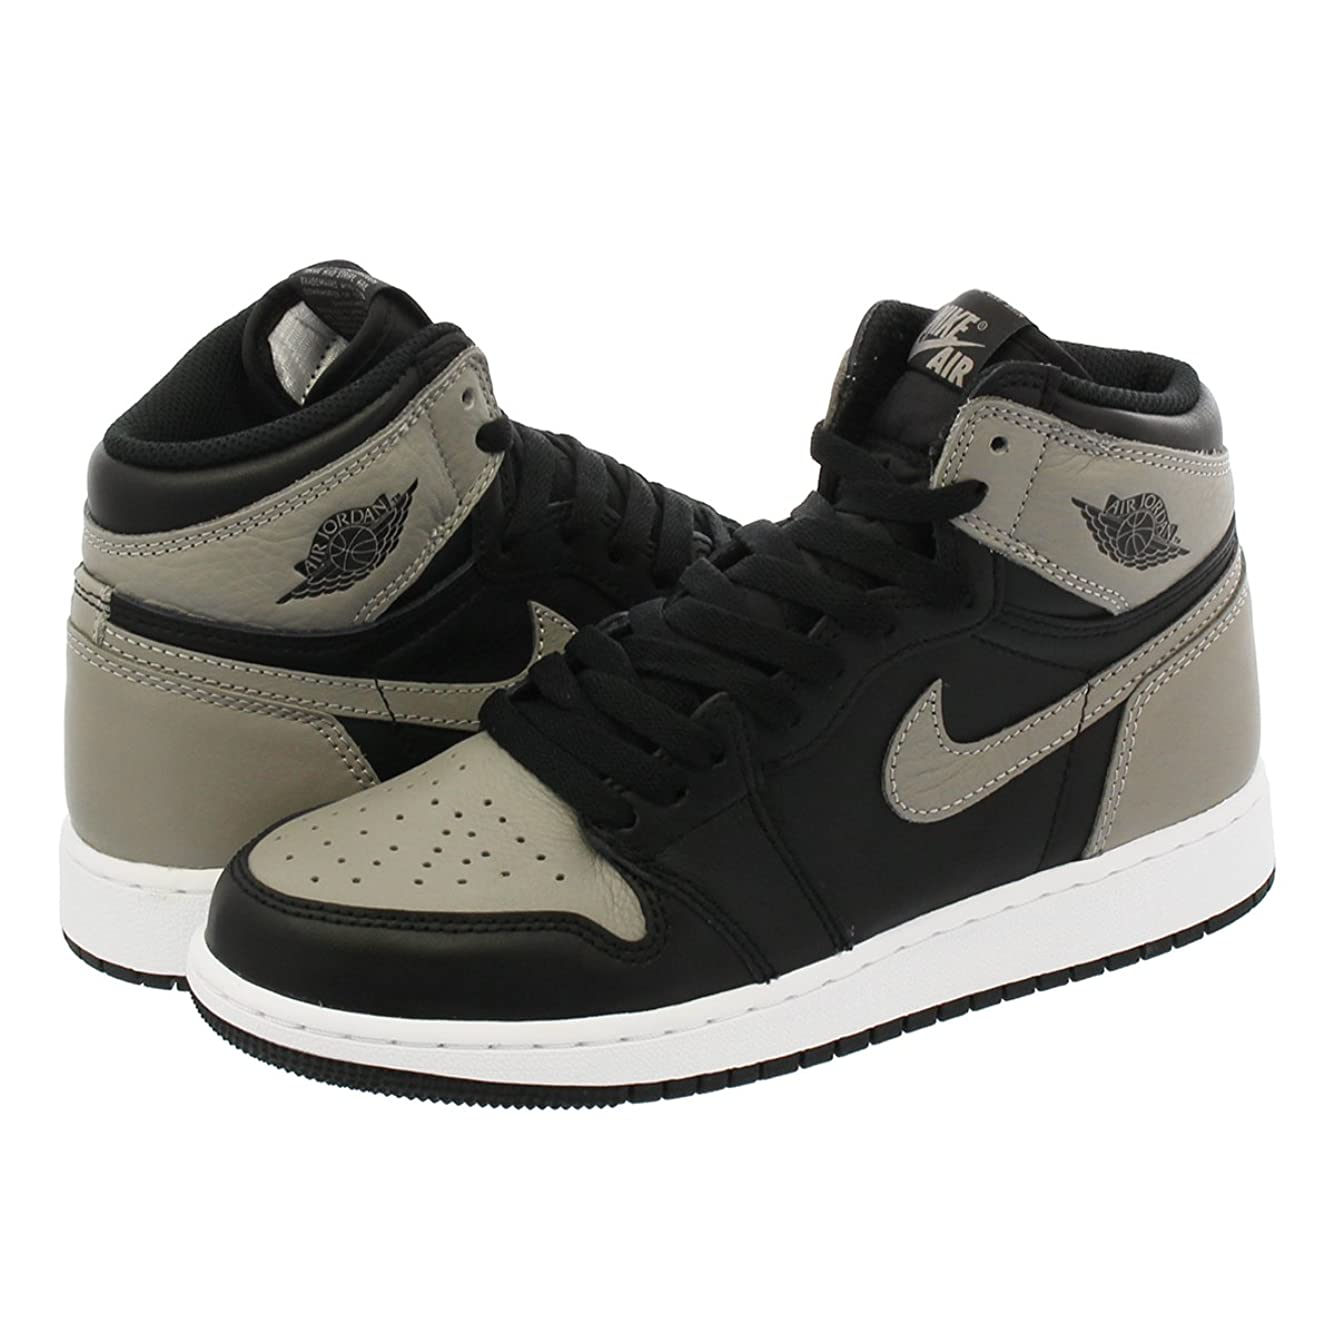 刺激する犯罪故障[ナイキ] AIR JORDAN 1 RETRO HIGH OG GS BLACK/MEDIUM GREY/WHITE 【SHADOW】 [並行輸入品]